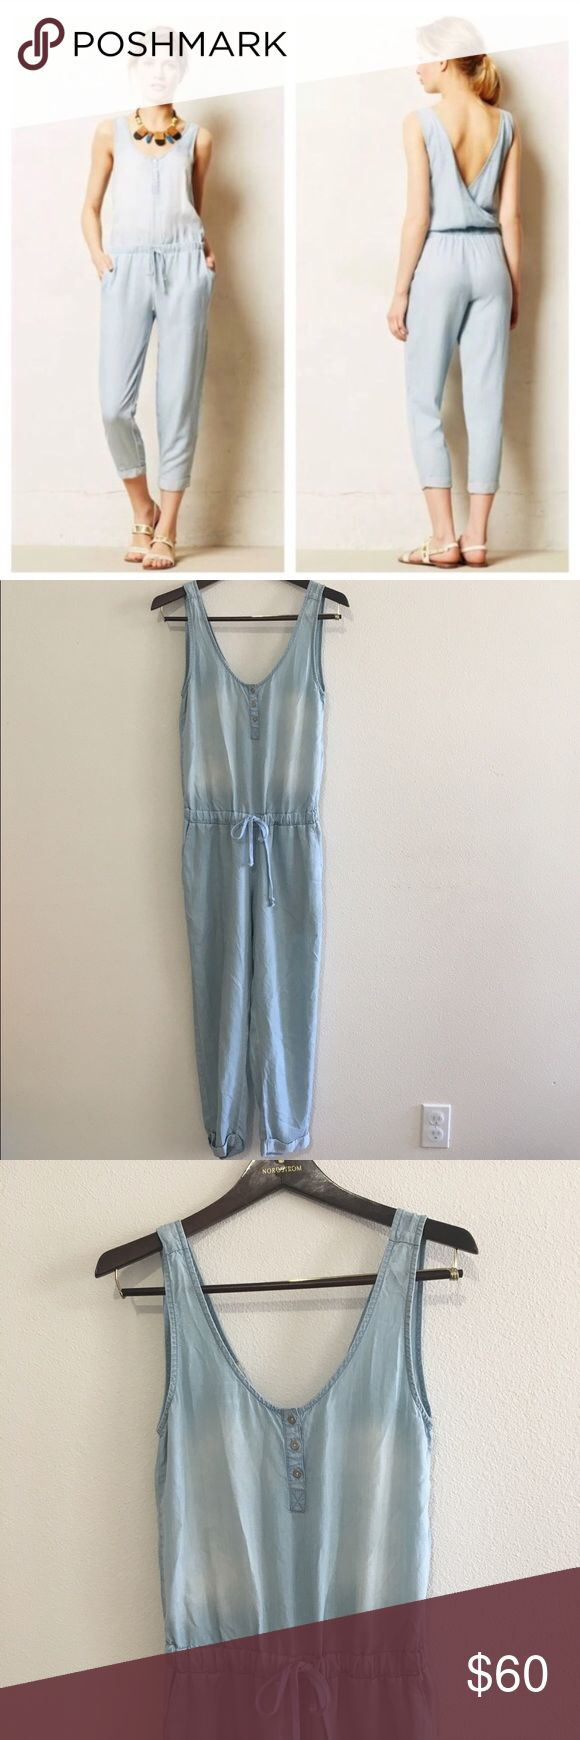 Cloth & Stone Chambray Jumpsuit Chambray Jumpsuit by Cloth & Stone. Sold at Anthropologie. Excellent barely worn condition. Size S   For measurements or additional information please comment below! We are fast to respond! Ships same day/next day M-SAT before 3PM PST. Please, no price discussion in comment. No trades, thank you! We accept reasonable offers using the offer button only. Thank you for supporting our dreams  Anthropologie Pants Jumpsuits & Rompers